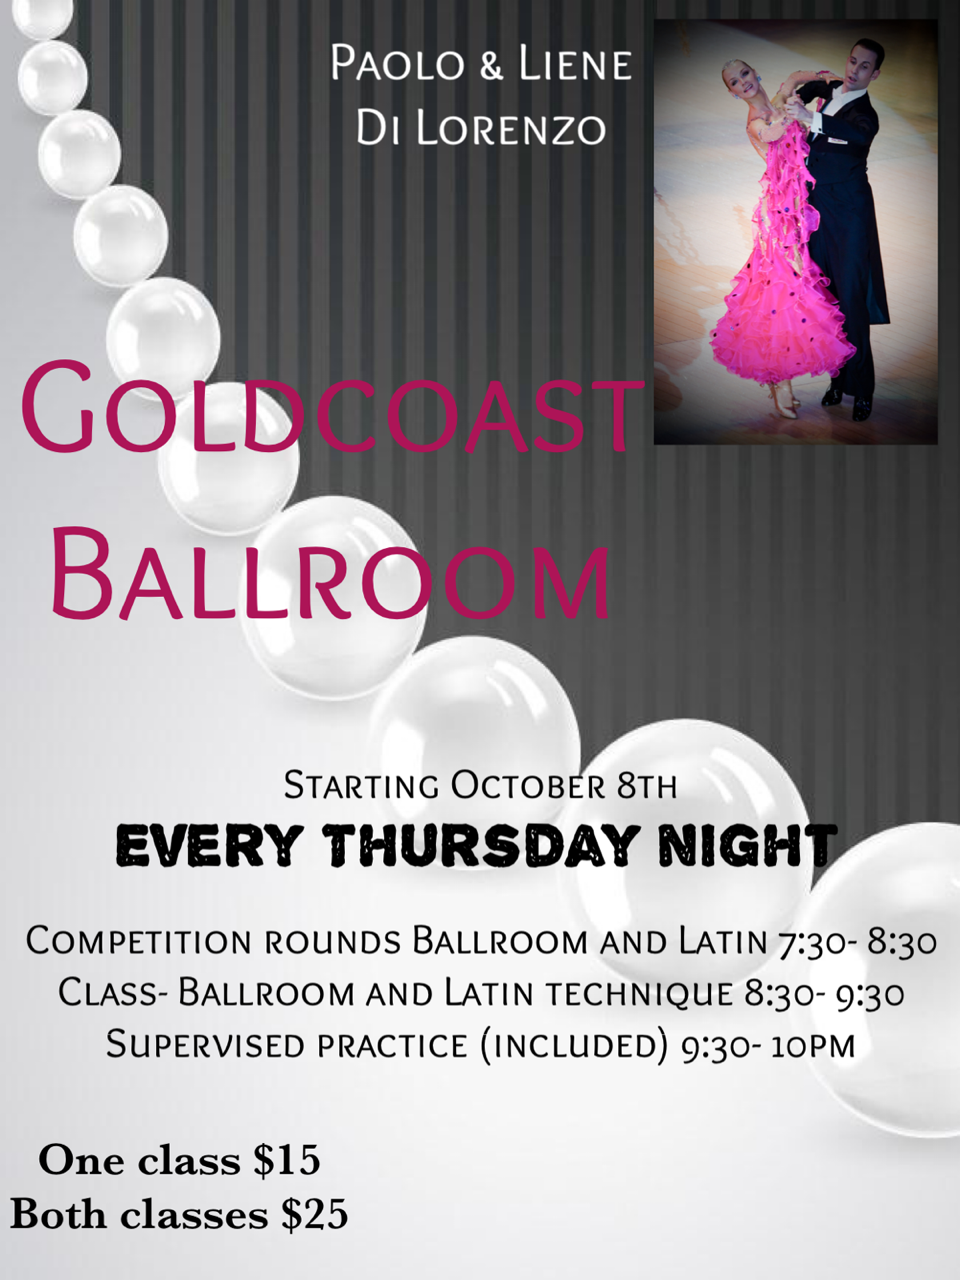 Paolo & Liene Di Lorenzo - 2 Popular Group Classes & Practice Session Every Thursday Night, at Goldcoast Ballroom!